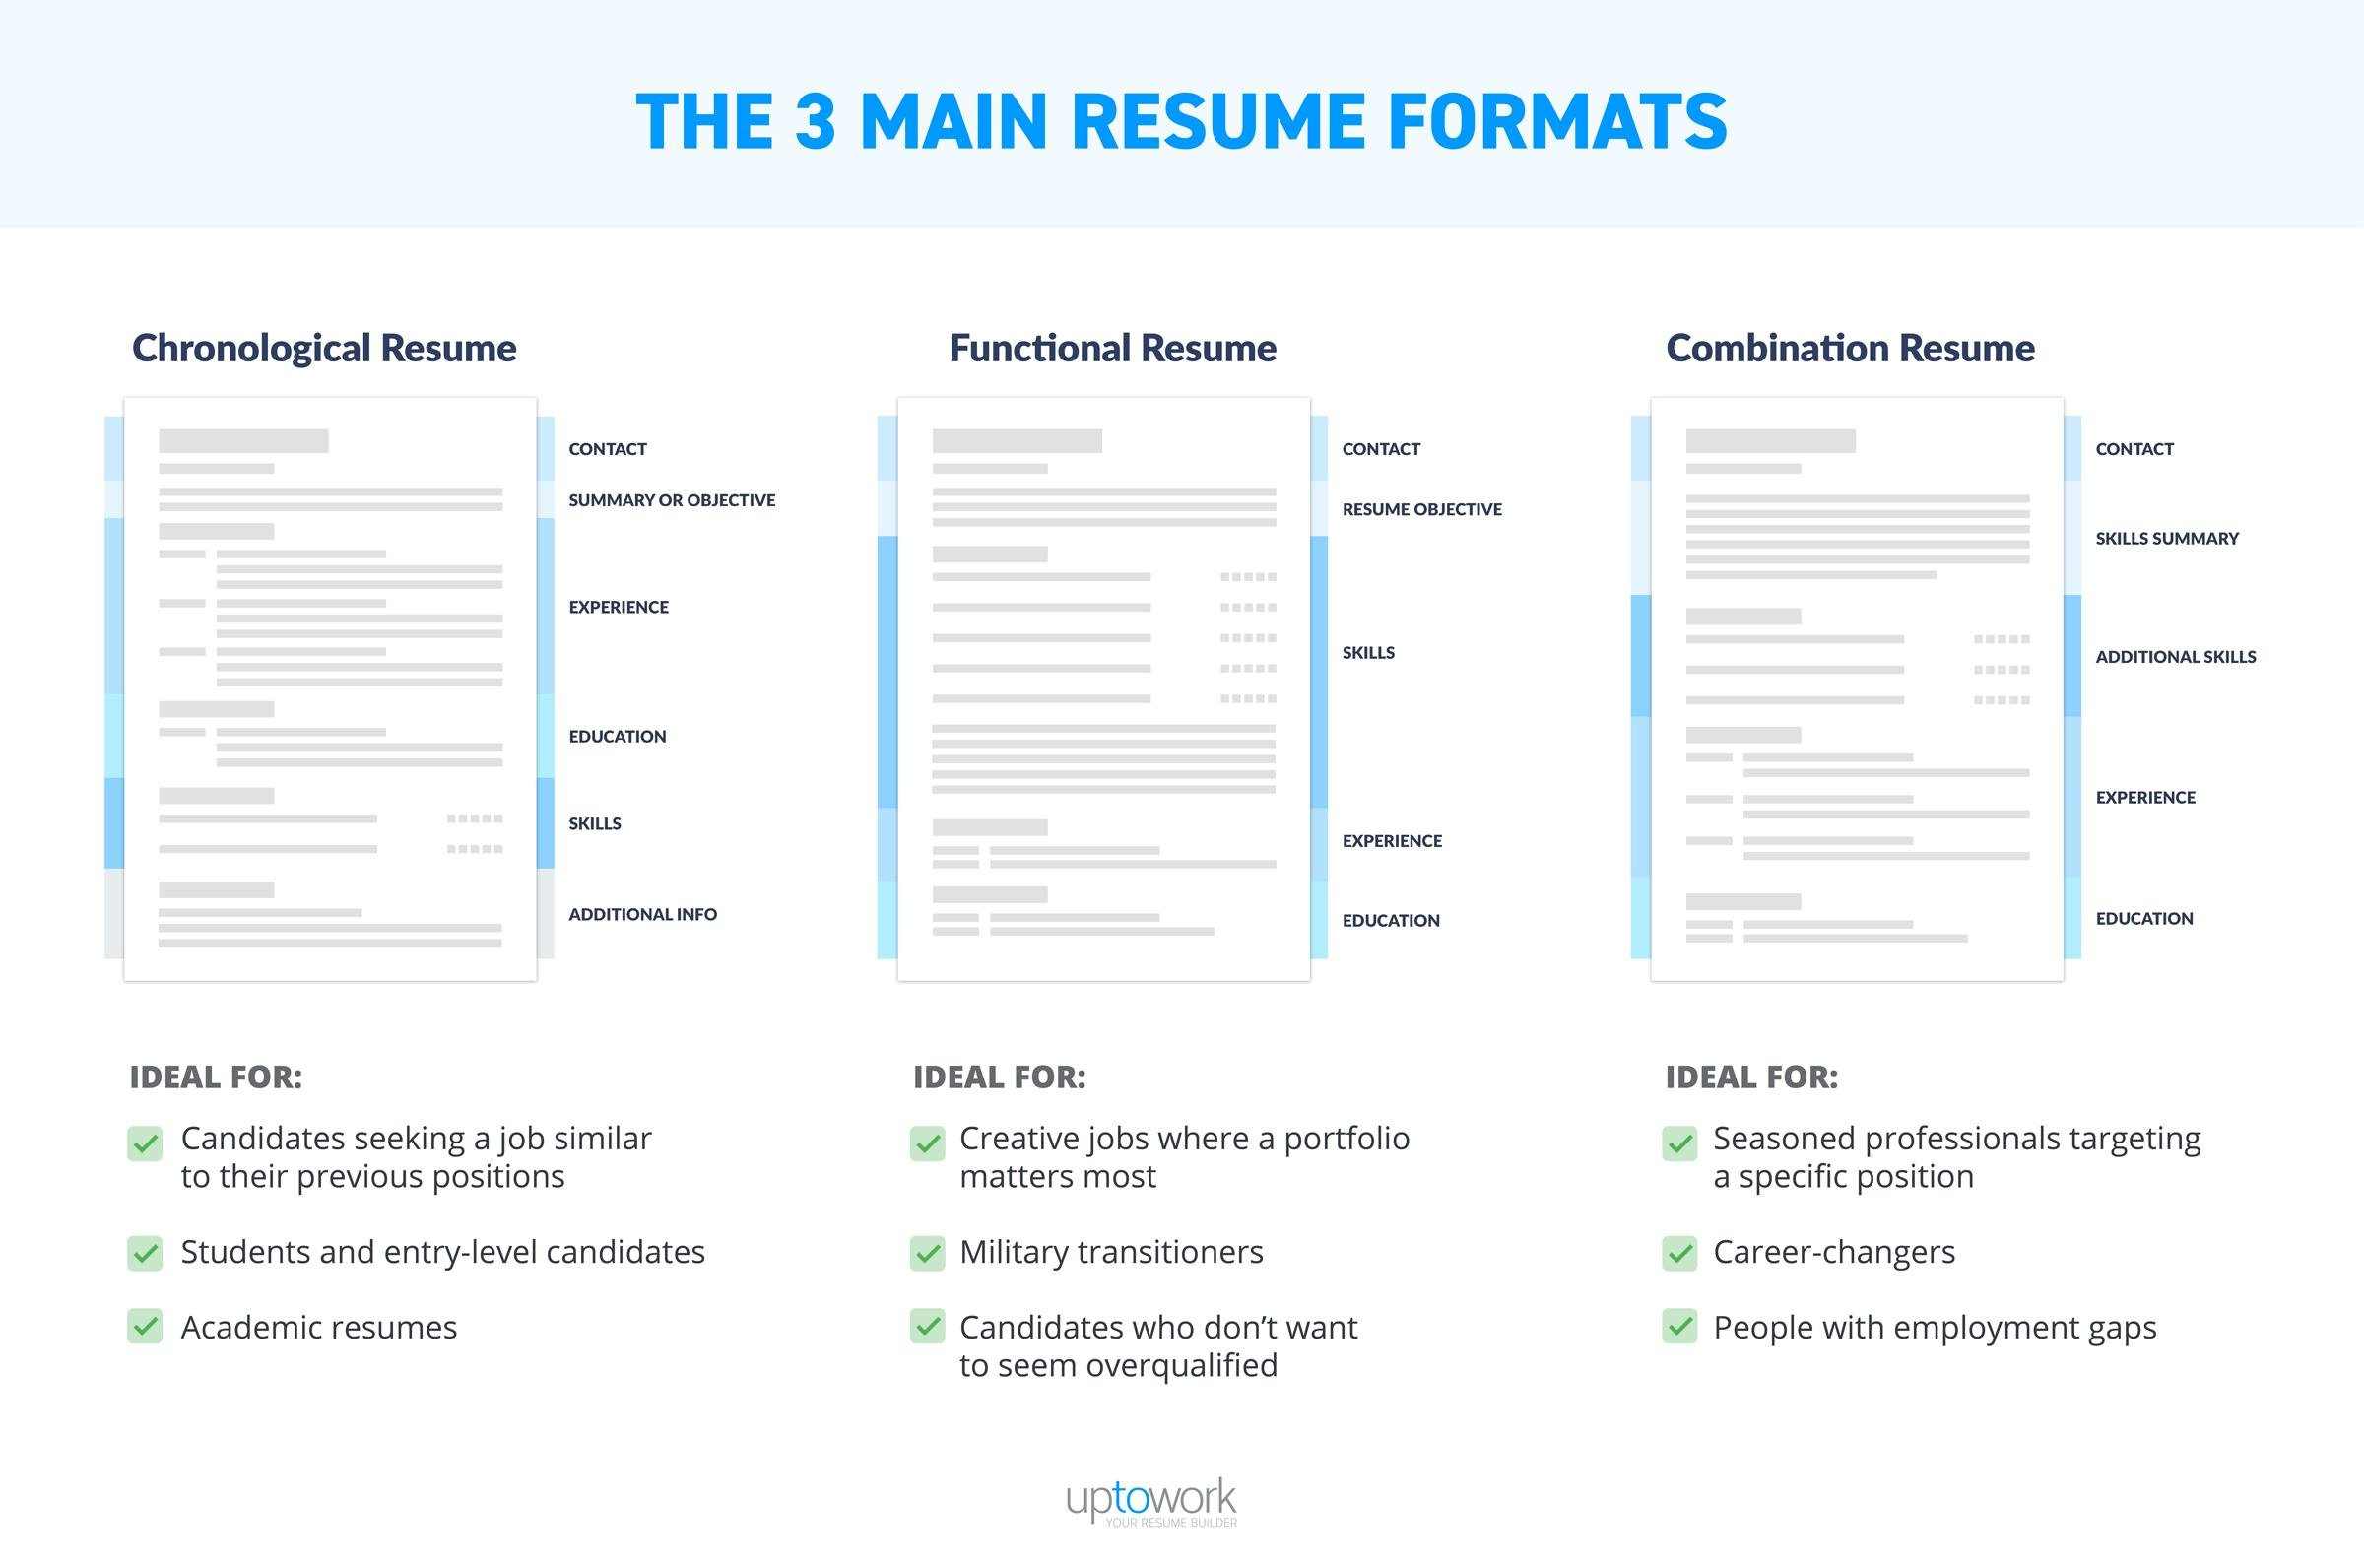 Resume Formats: Chronological, Functional, Combination  Different Resume Templates